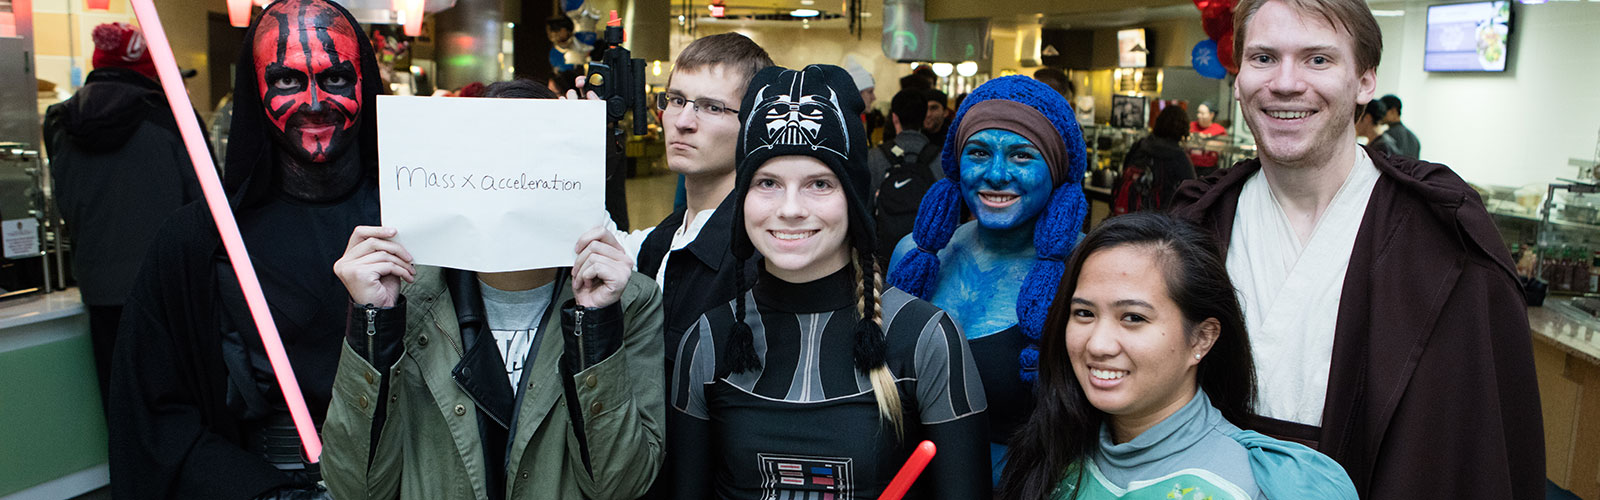 A group of students pose for a photo in Star Wars costumes.